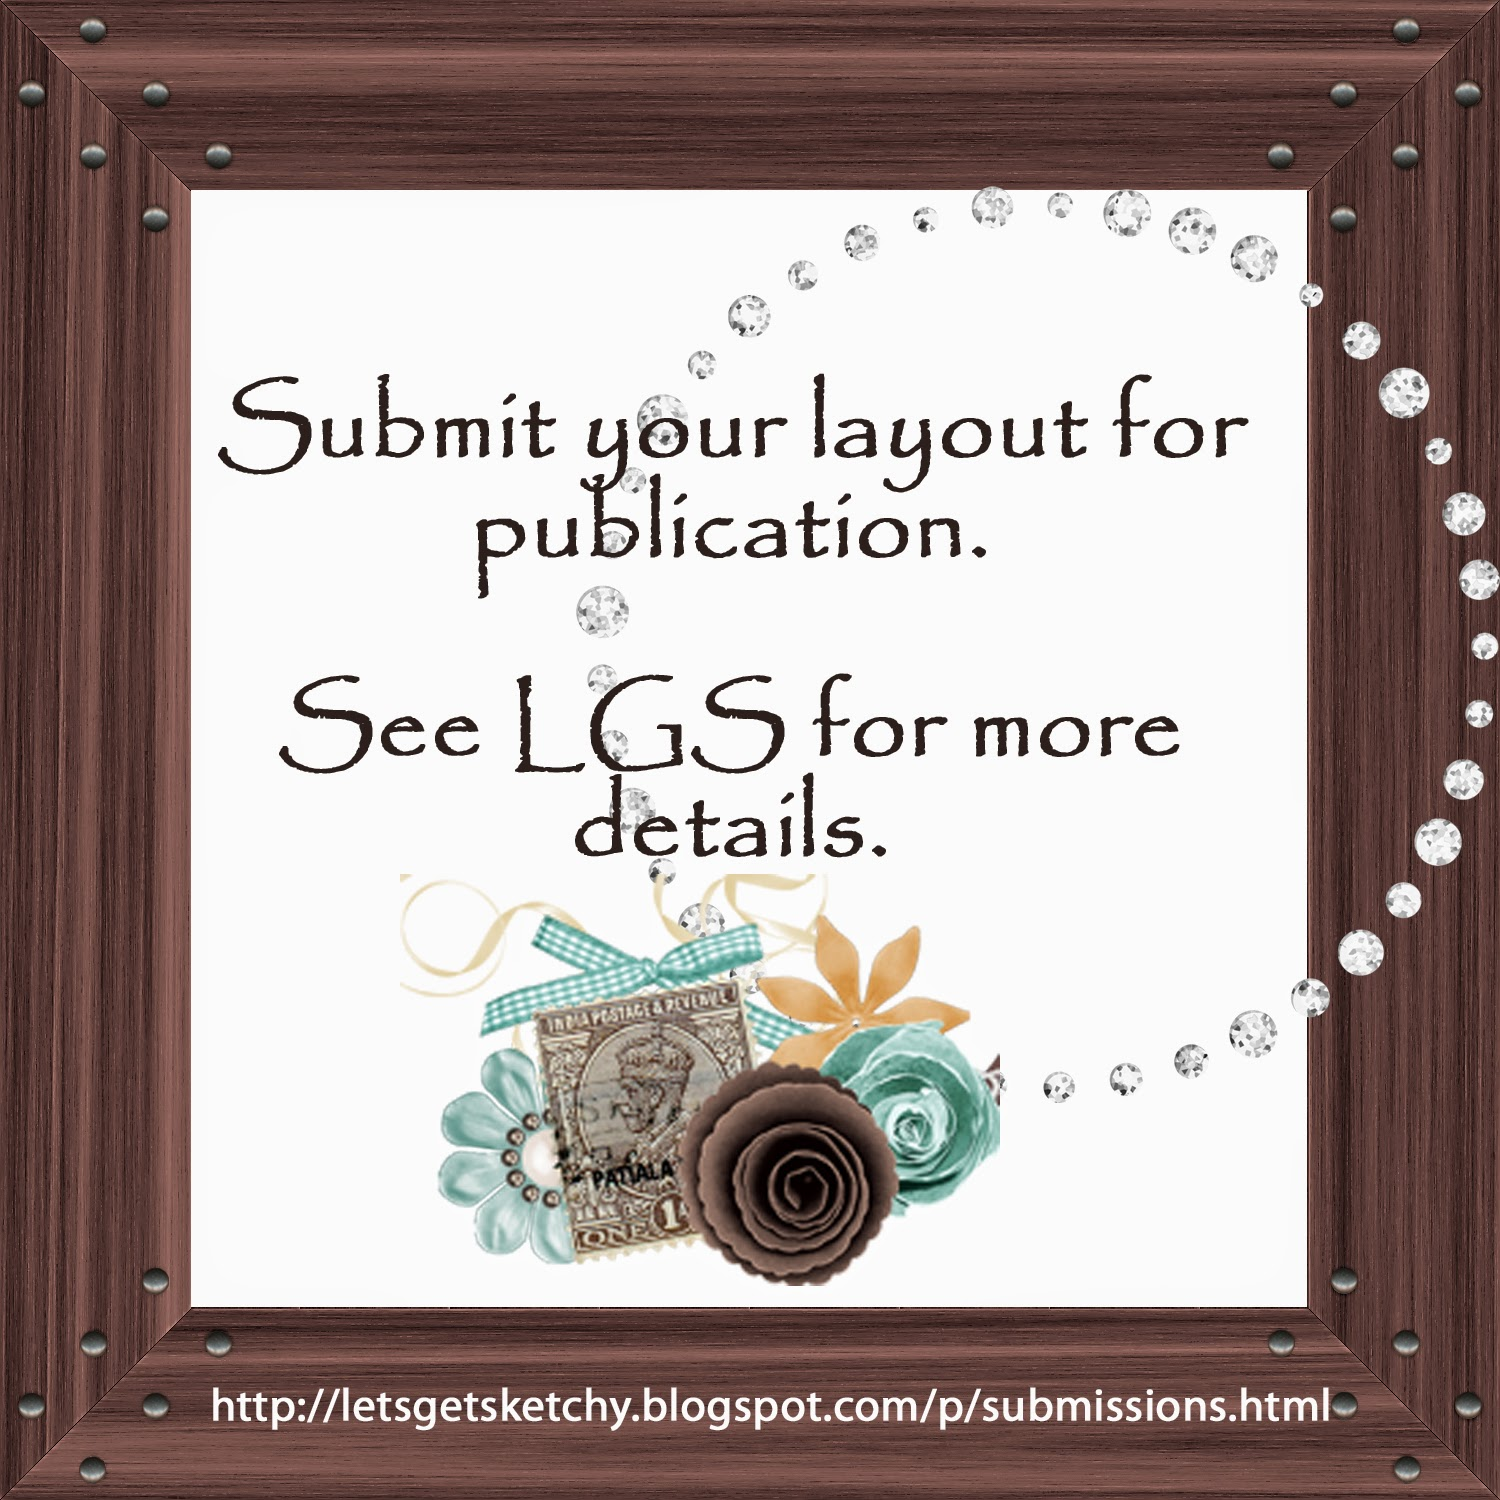 Submit your layout for publication